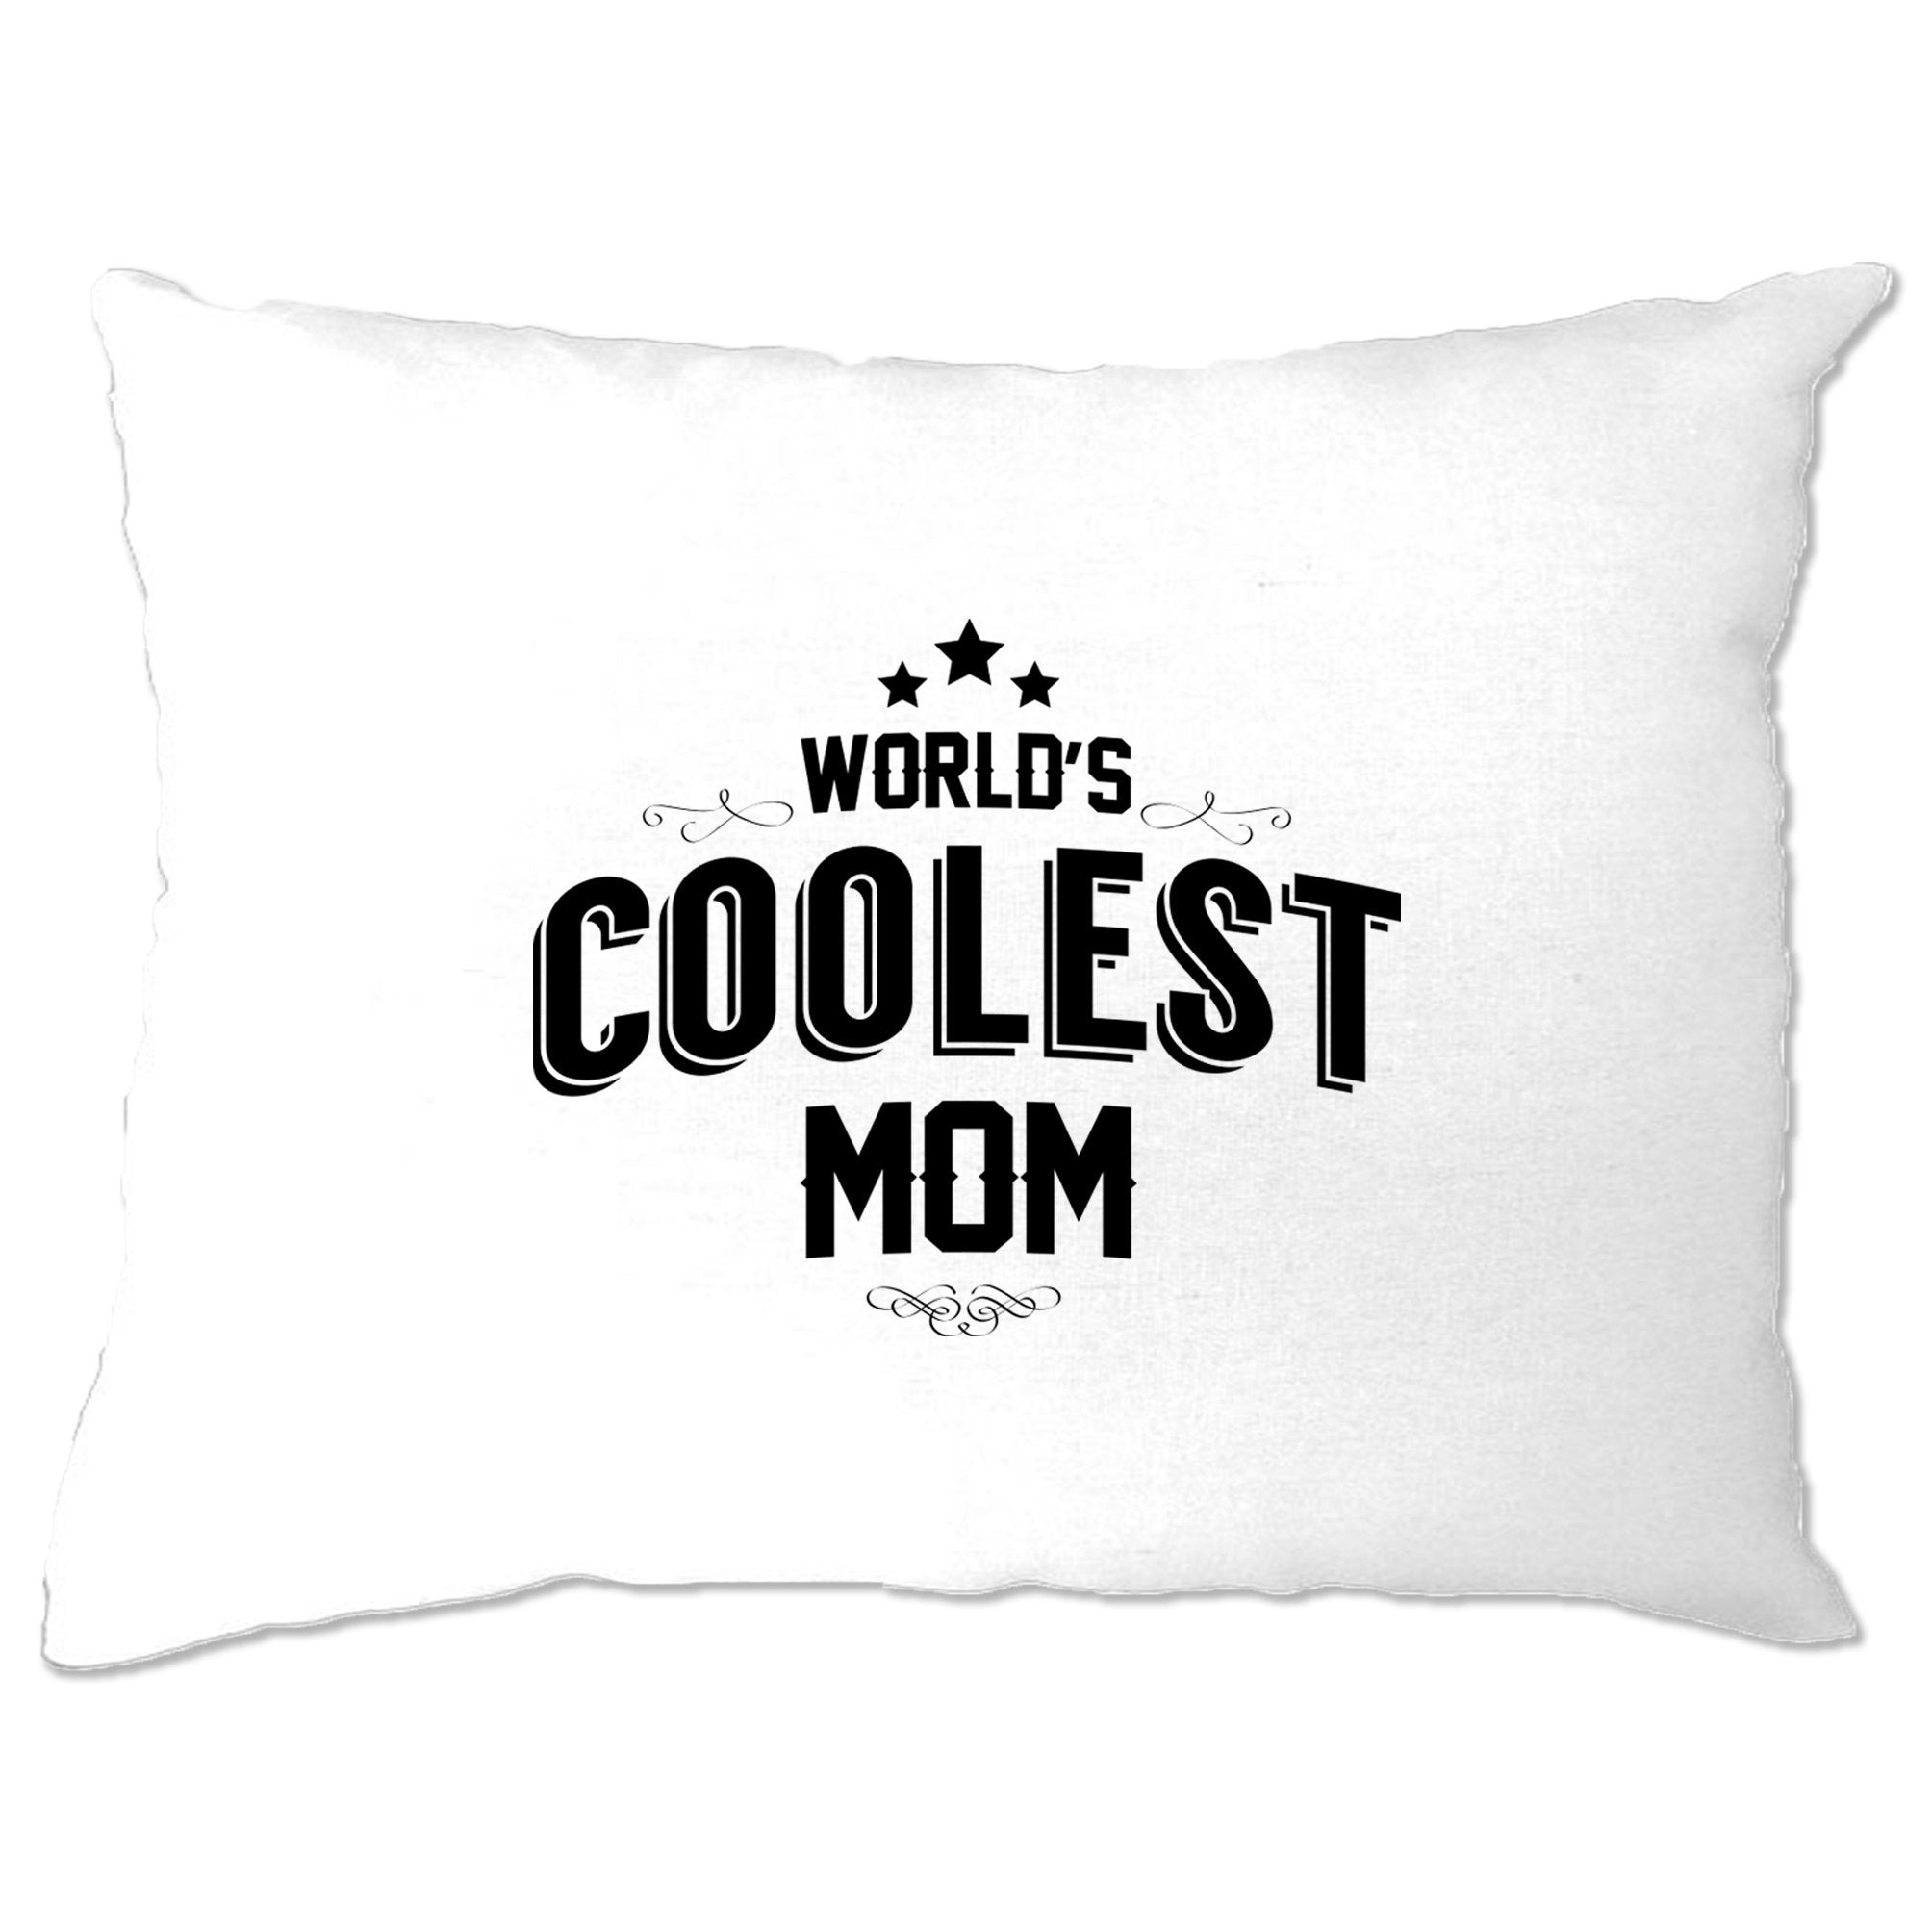 Novelty Pillow Case Worlds Coolest Mom Slogan